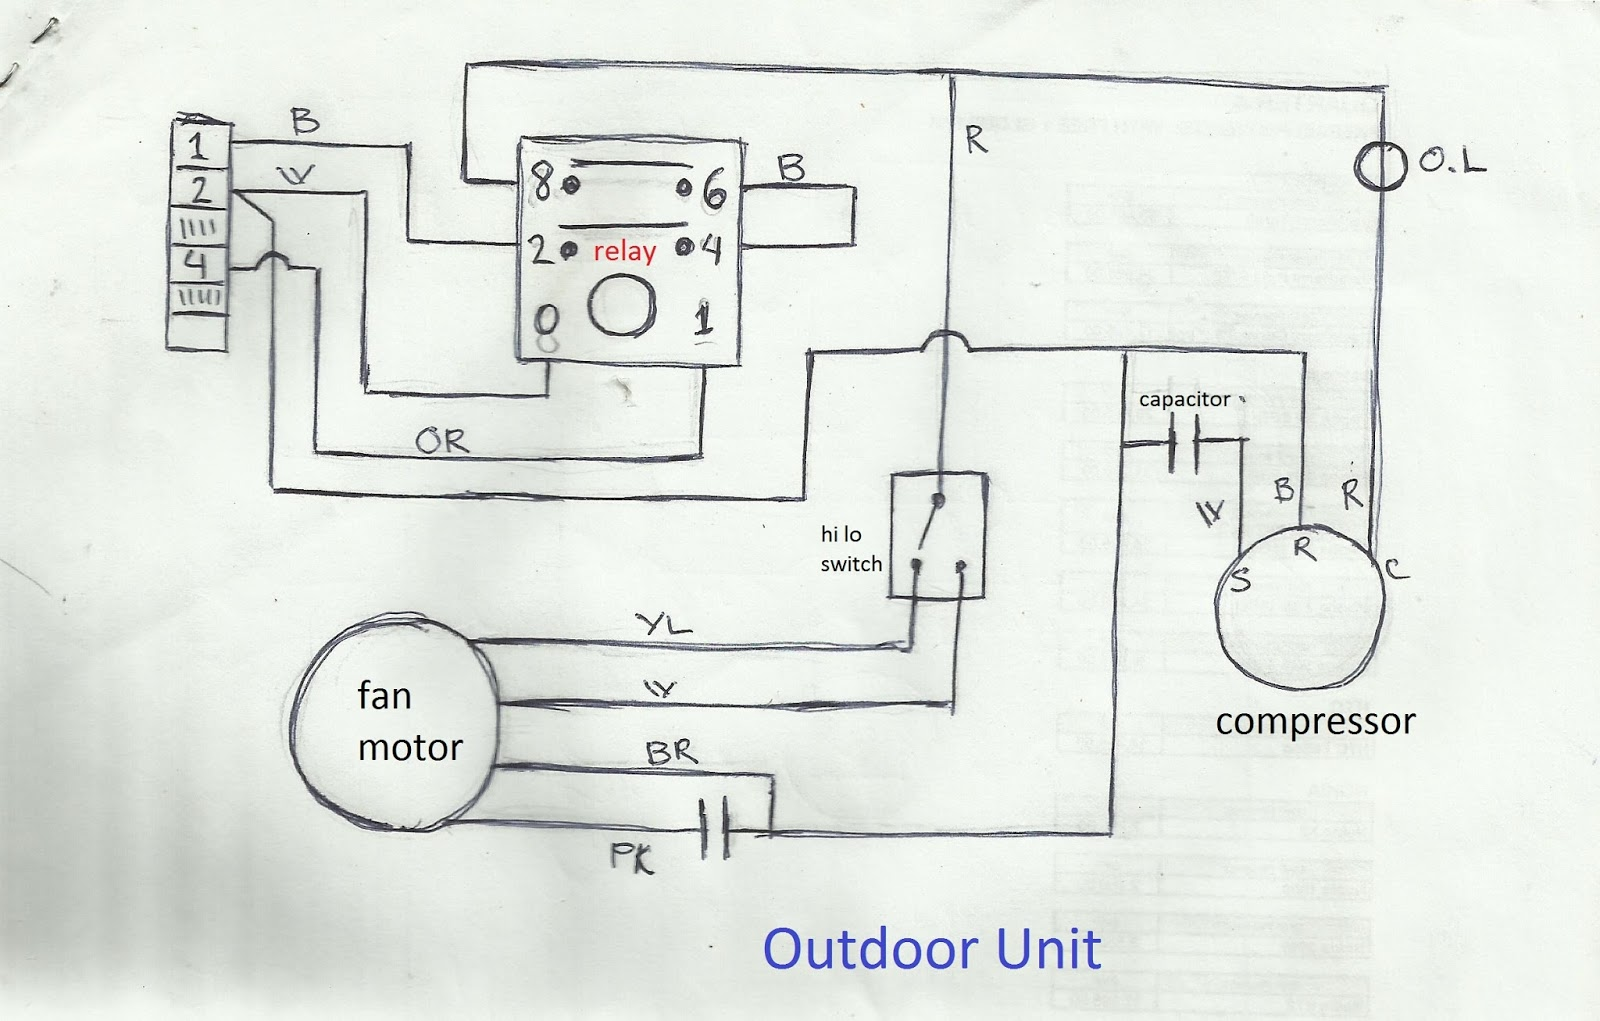 hight resolution of air conditioner fan wiring diagram wiring library pressor relay wiring diagrams in addition trane ac unit wiring diagram